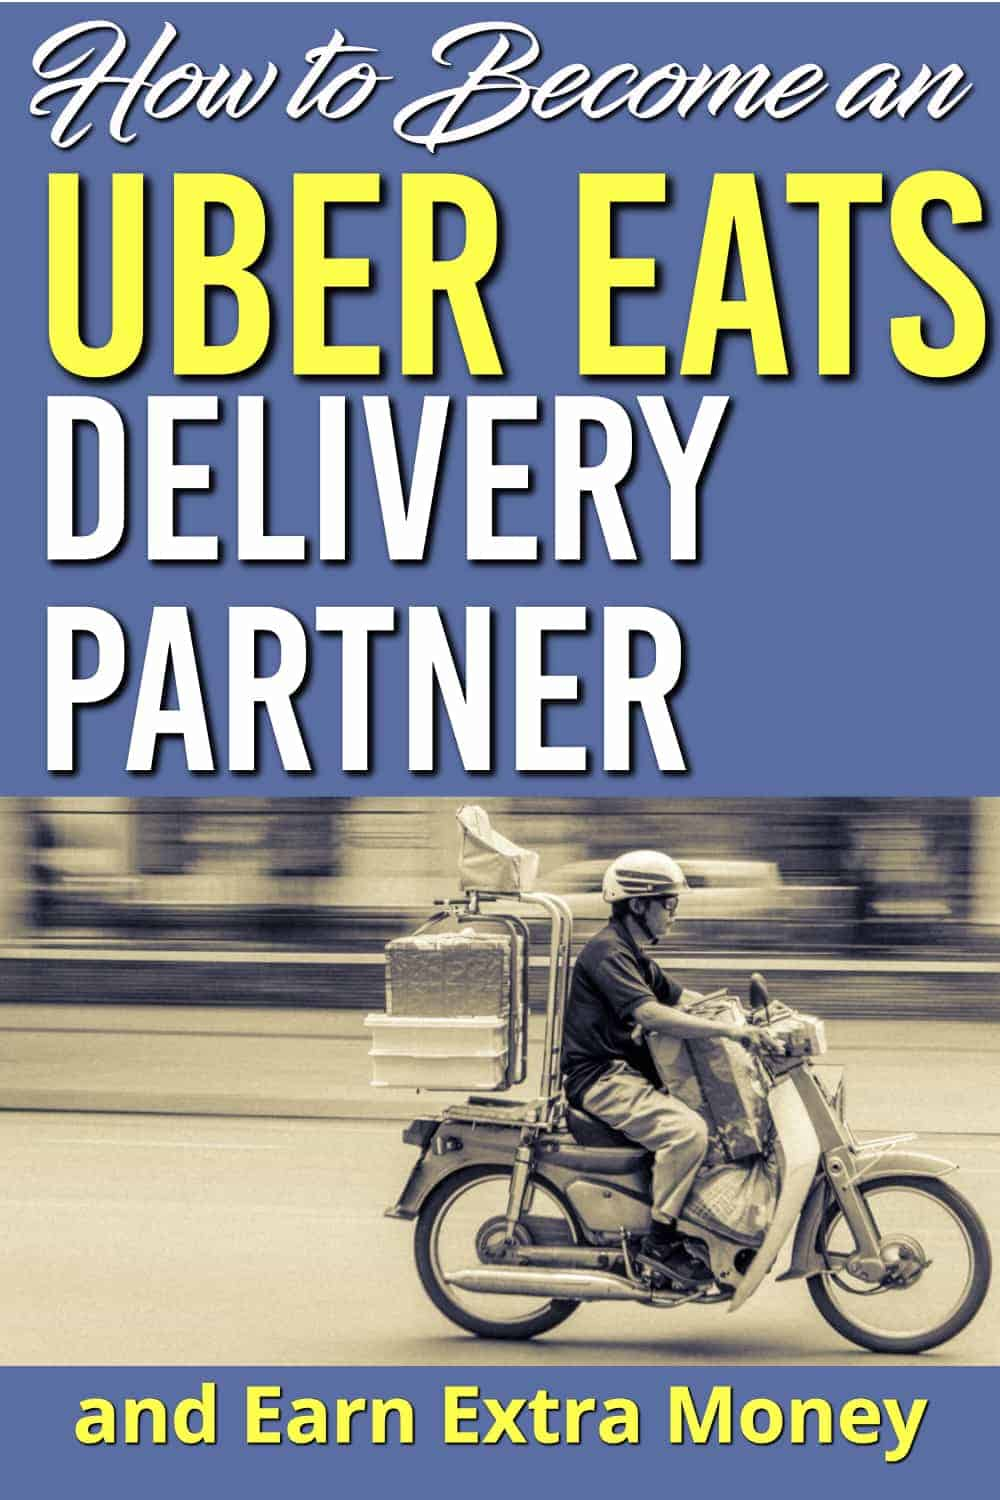 Need a way to earn extra money but want to do it in your spare time? Become an Uber Eats driver. It's easy to get started here's what you need to know | Uber Eats Delivery Program | Earn Extra Money |